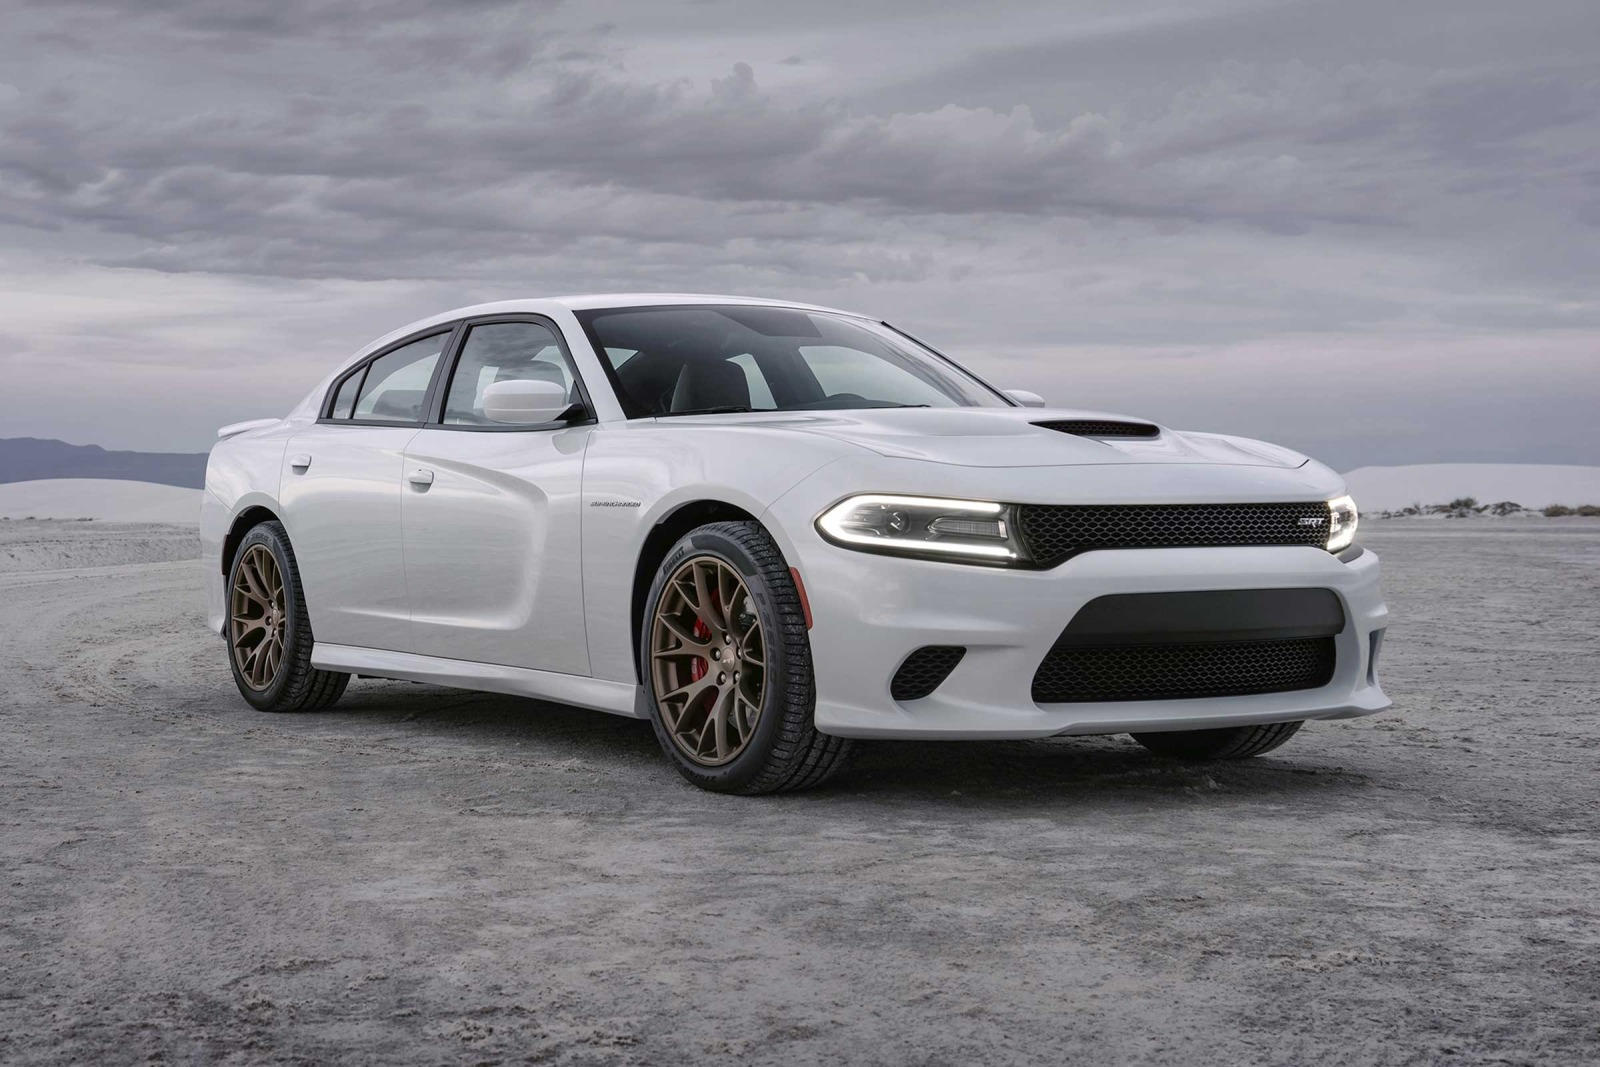 2018 Dodge Charger Srt Hellcat Review Trims Specs And Price Carbuzz